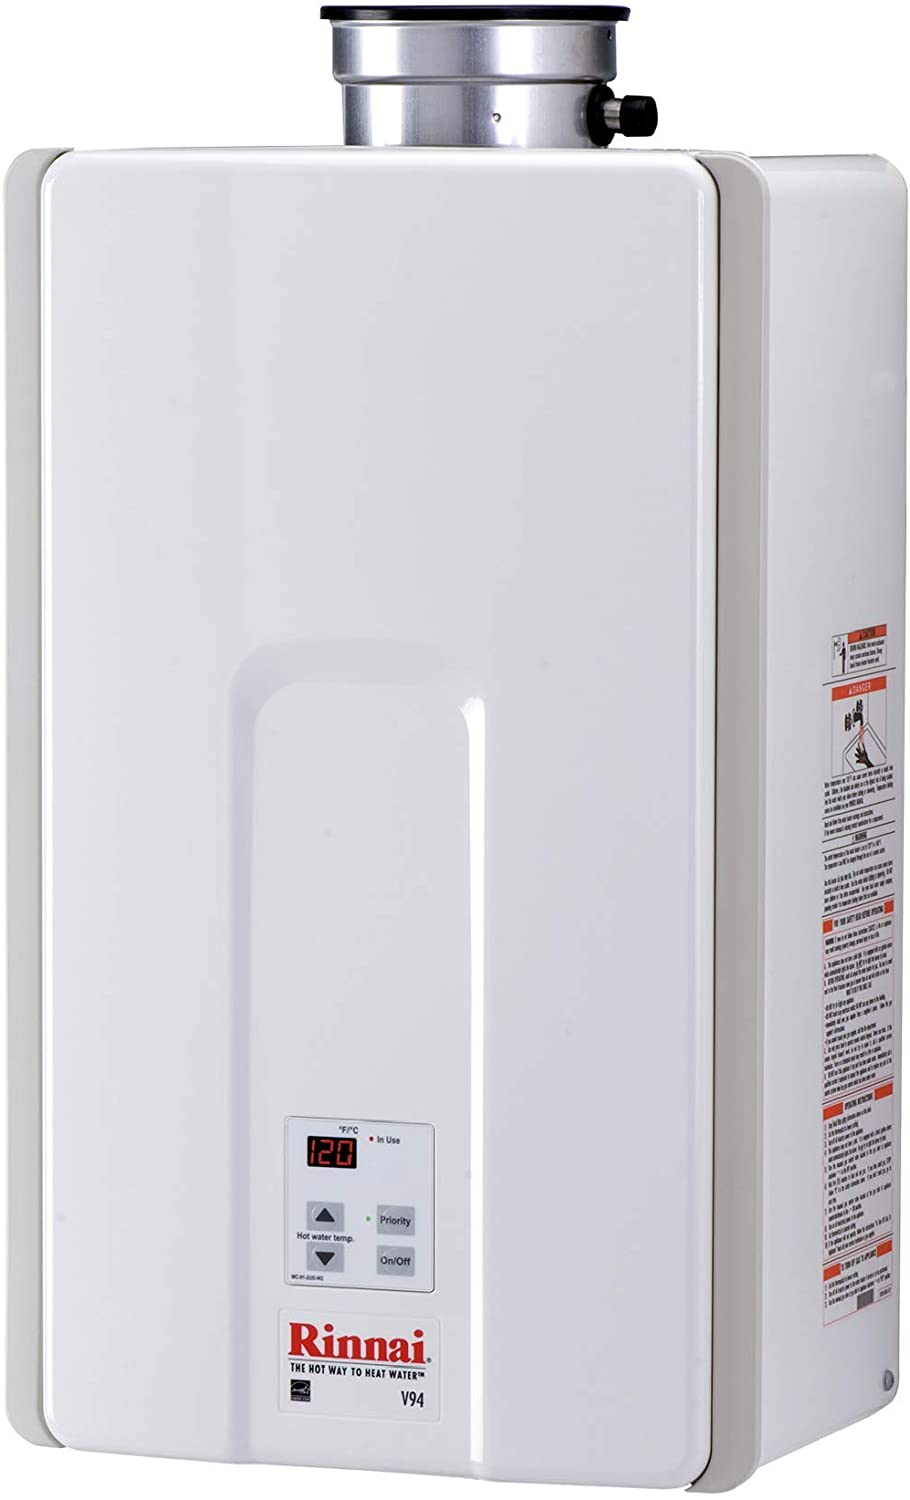 Rinnai V94iN High Efficiency Tankless Hot Water Heater, 9.4 GPM - Natural Gas: Indoor Installation